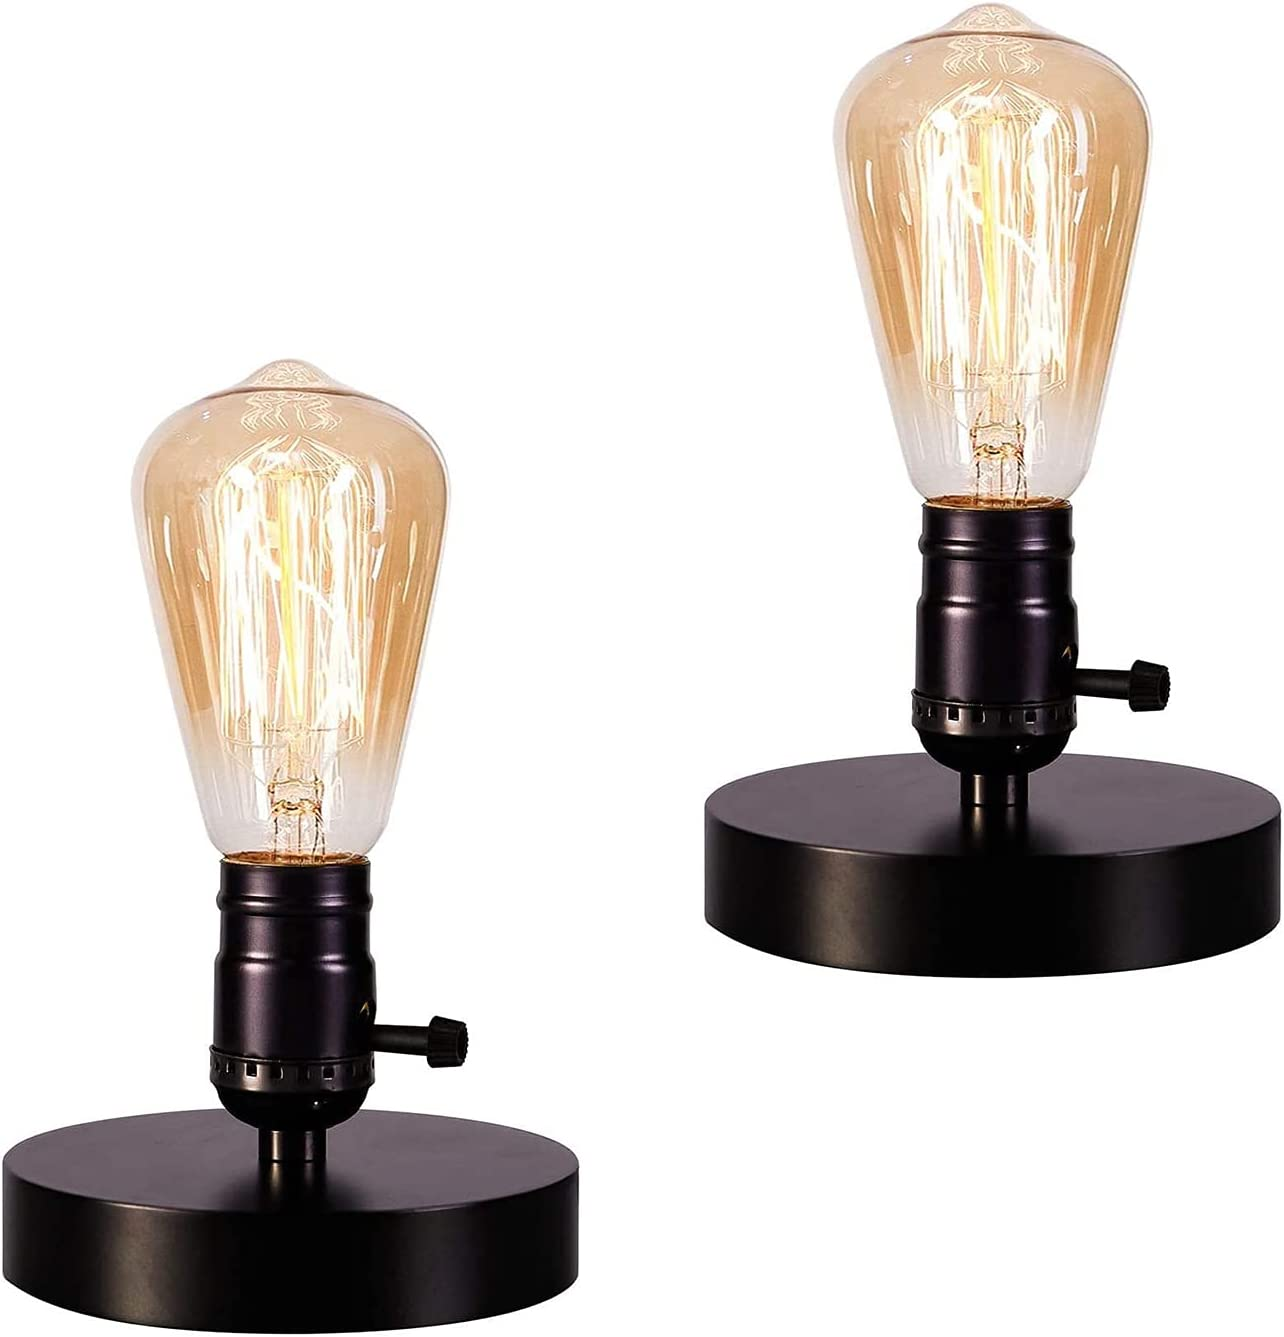 Vintage Table Lamp Base Licperron E26 E27 Industrial Vintage Desk Lamp with Plug in Cord On/Off Switch Bedside Lamp Holder for Home Lighting Decor 2 Pack